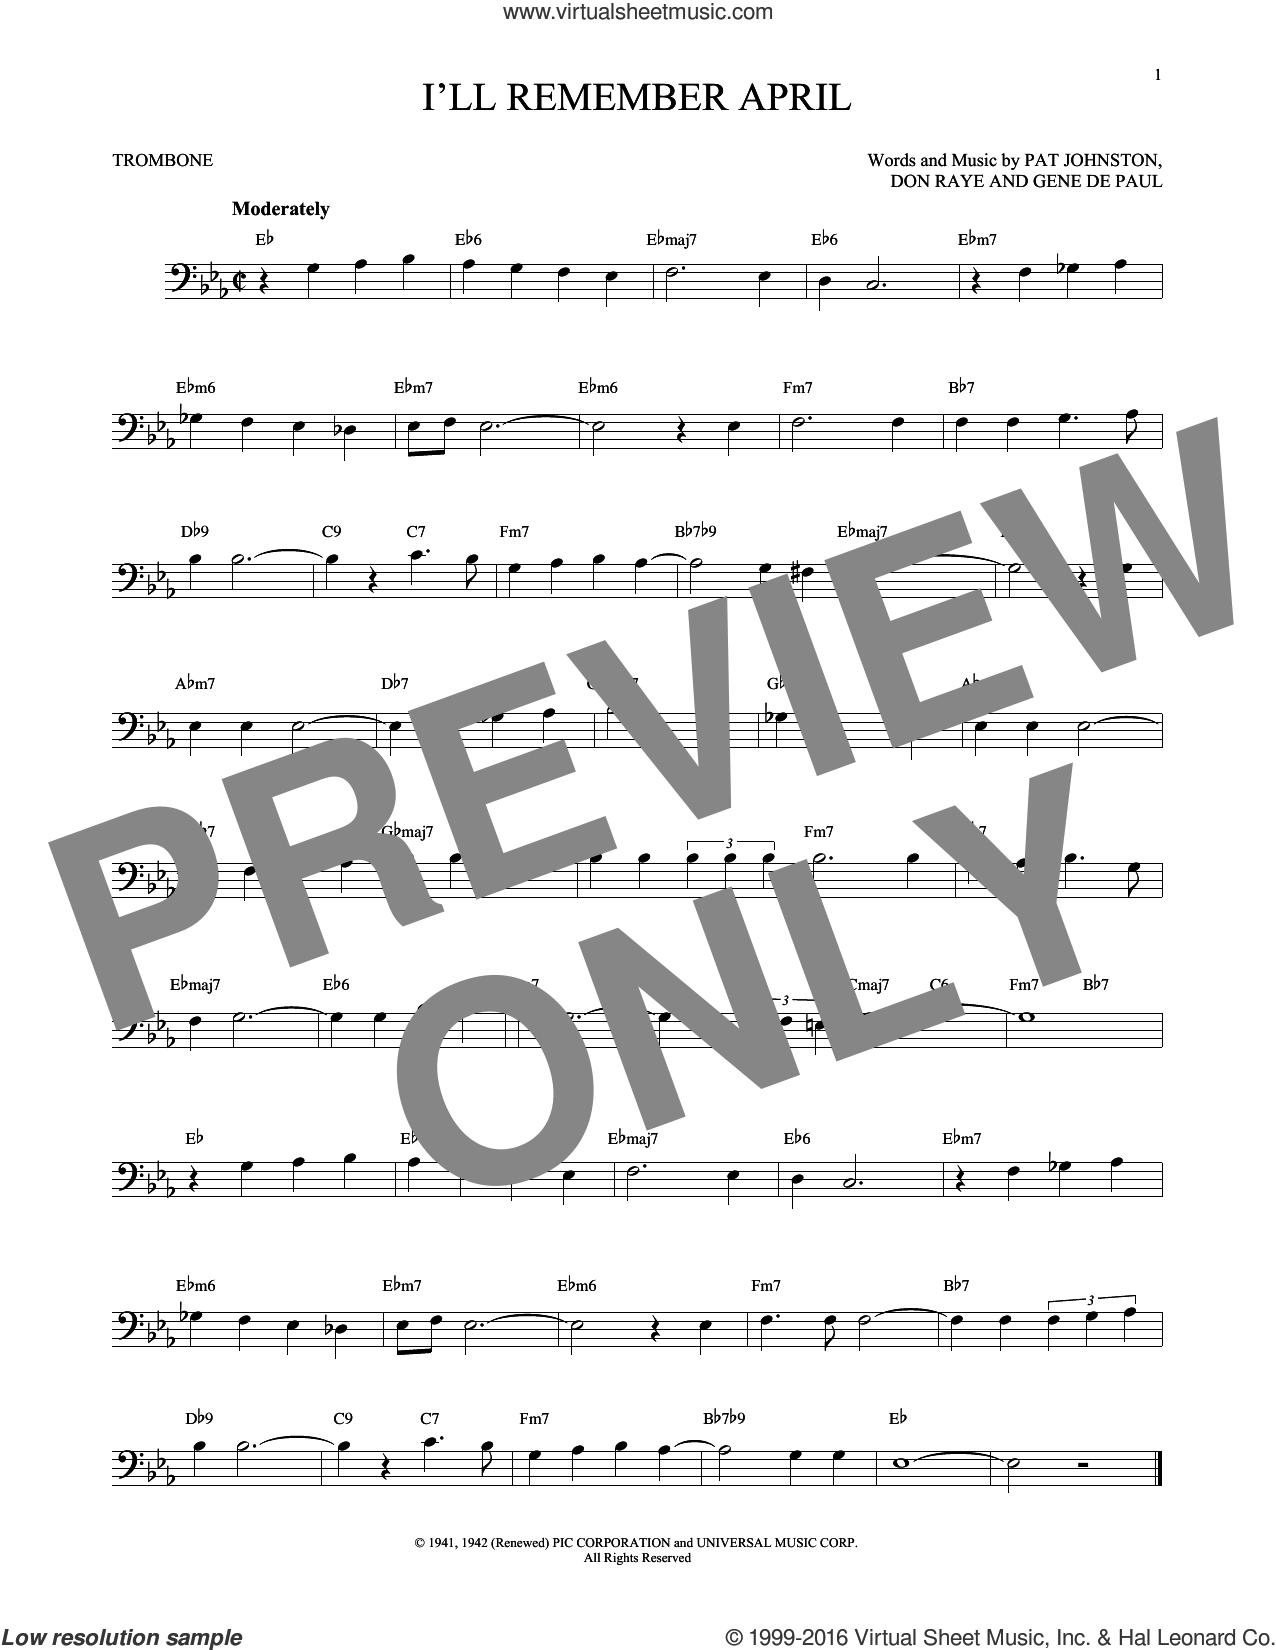 I'll Remember April sheet music for trombone solo by Woody Herman & His Orchestra, Don Raye, Gene DePaul and Pat Johnston, intermediate skill level